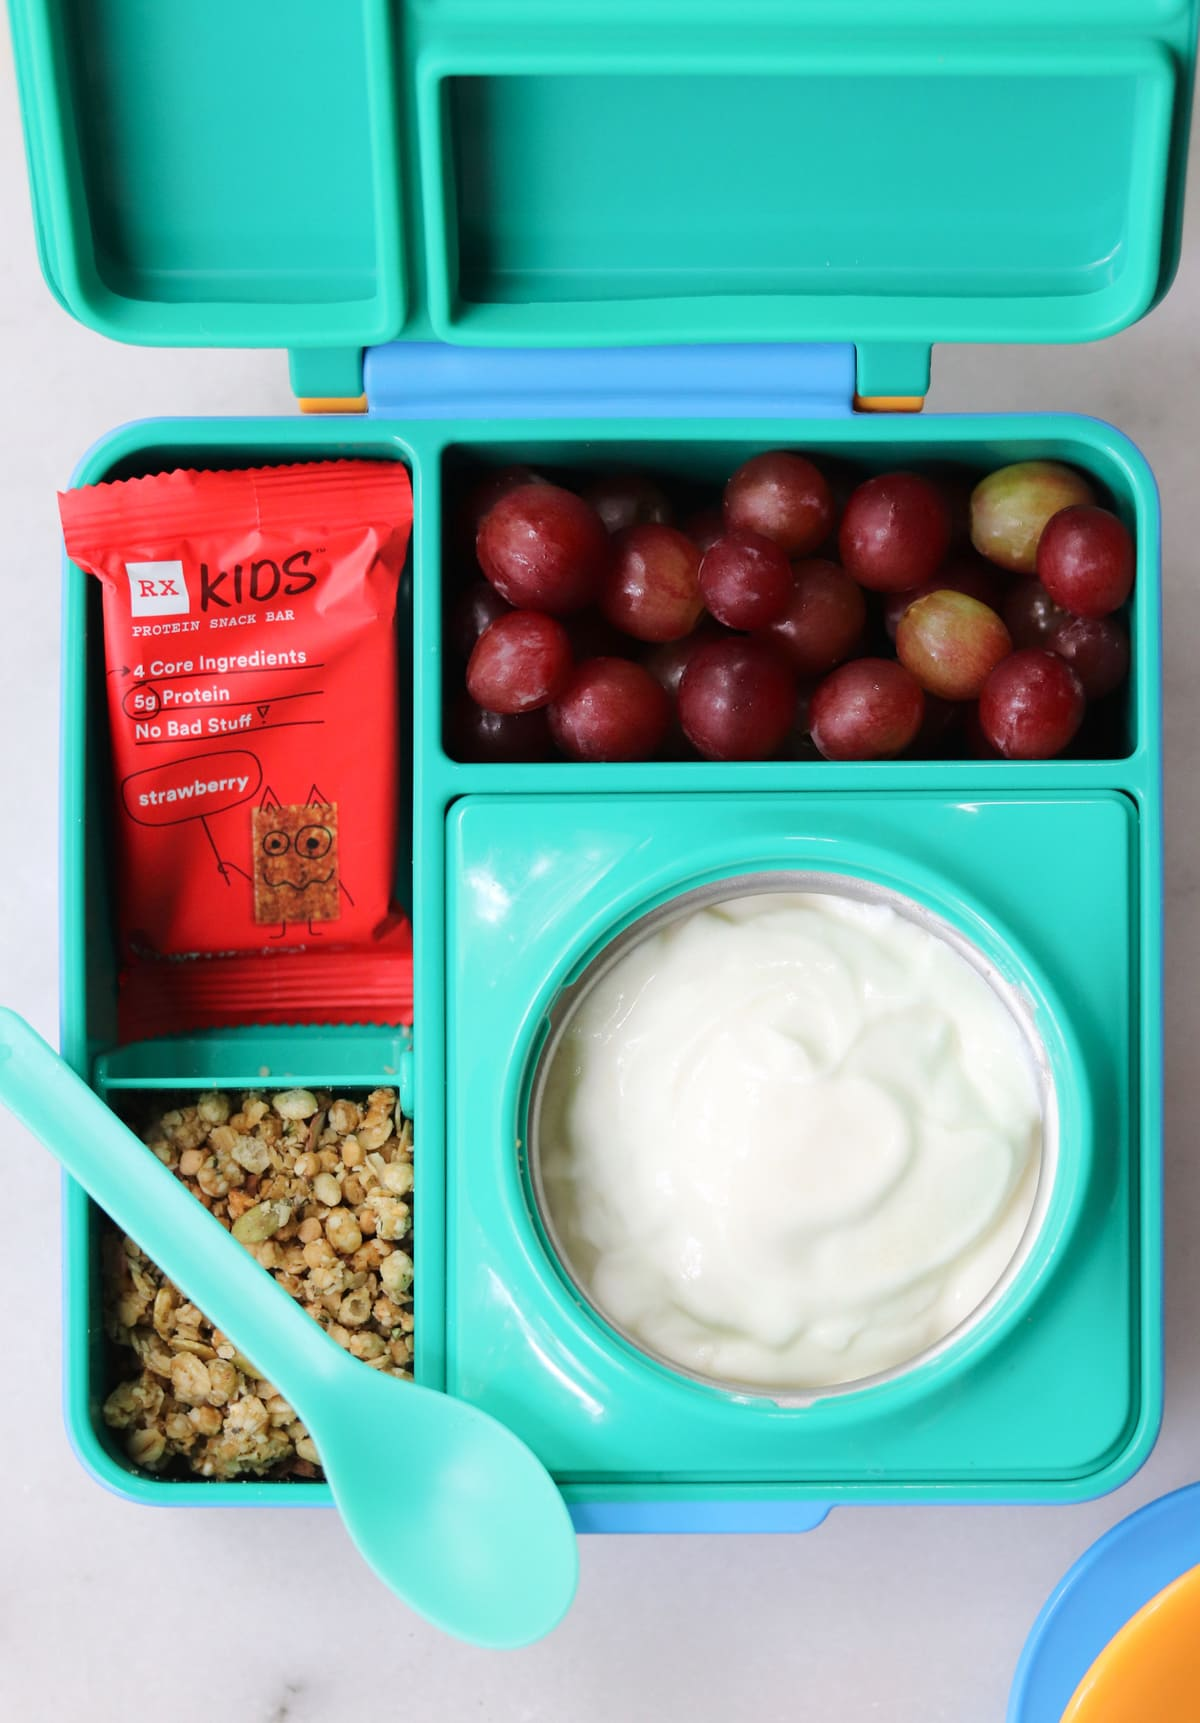 Close up of yogurt, granola, grapes, and a red kids rx bar inside a green lunch box.